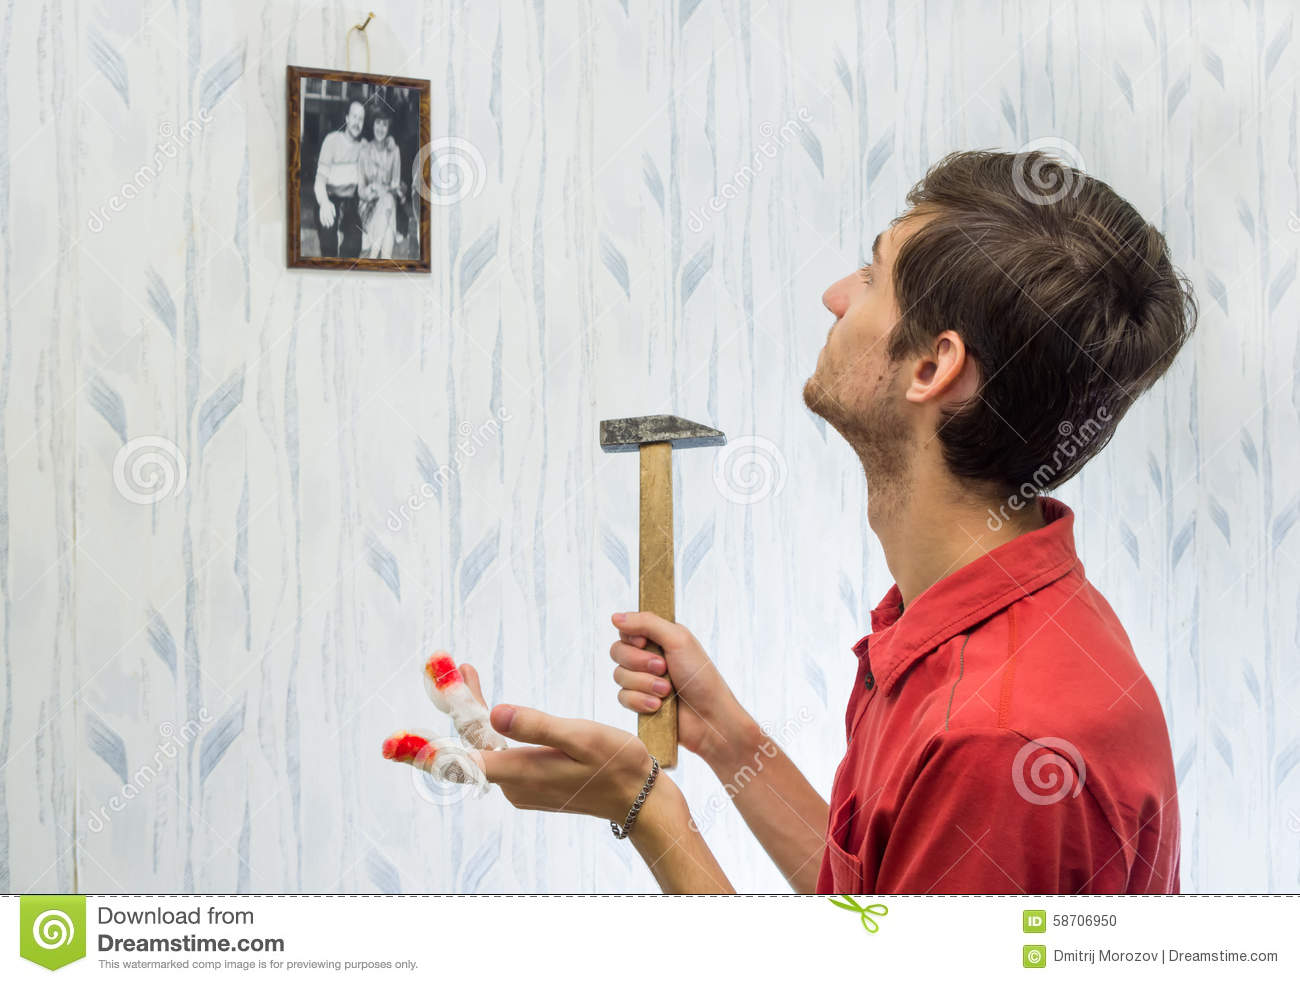 The young man hung pictures on the wall, improving interior